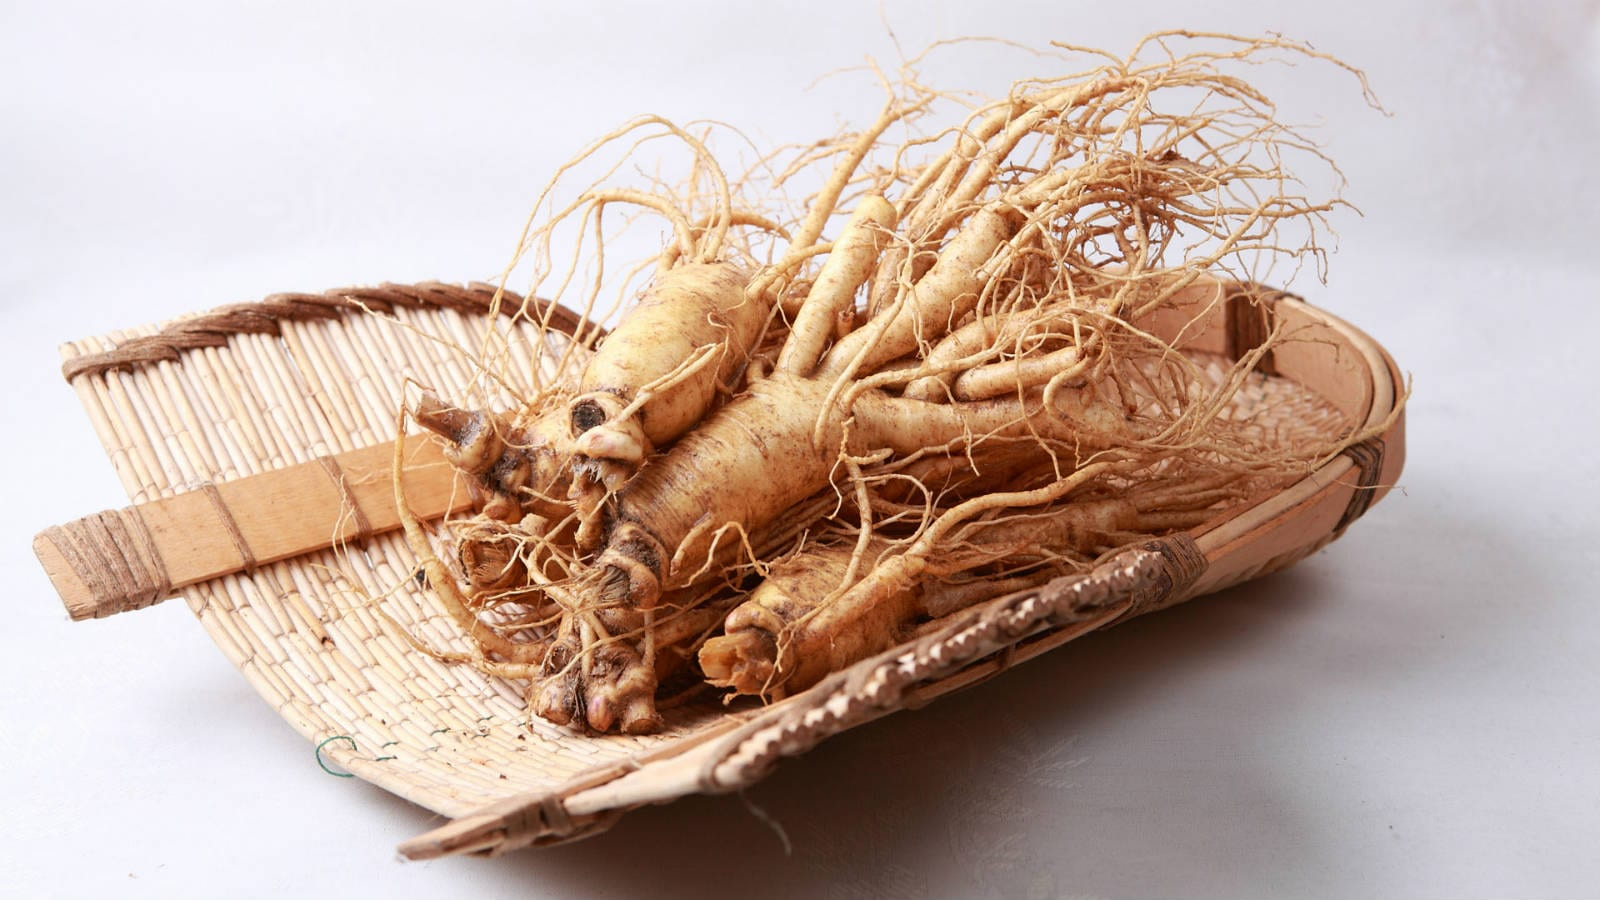 Properties of Ginseng